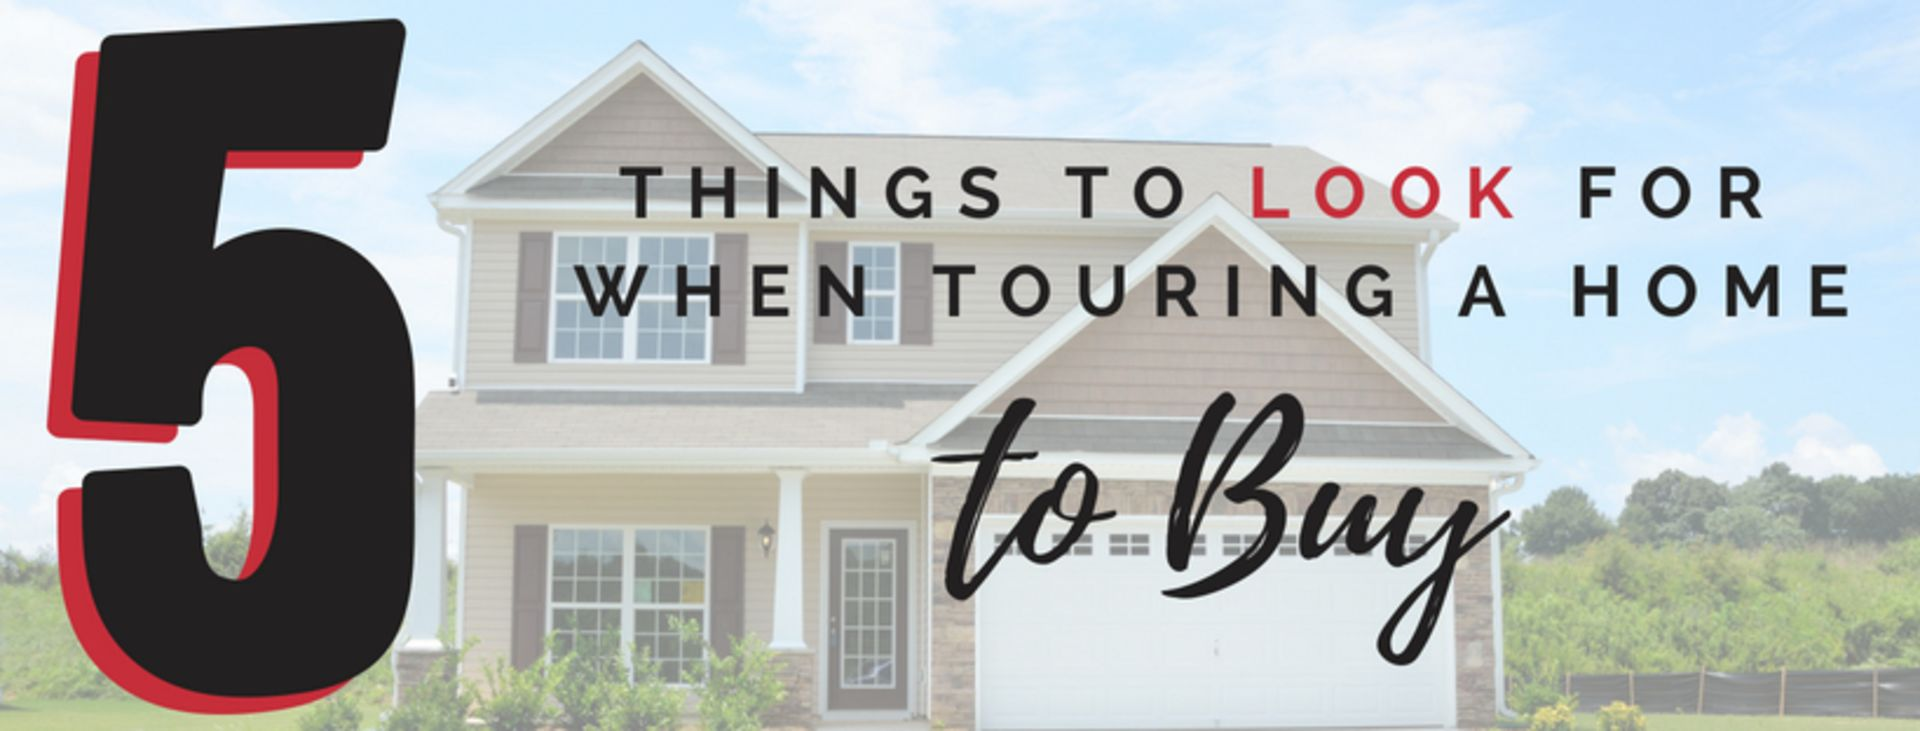 5 Things to look for when touring a home to buy